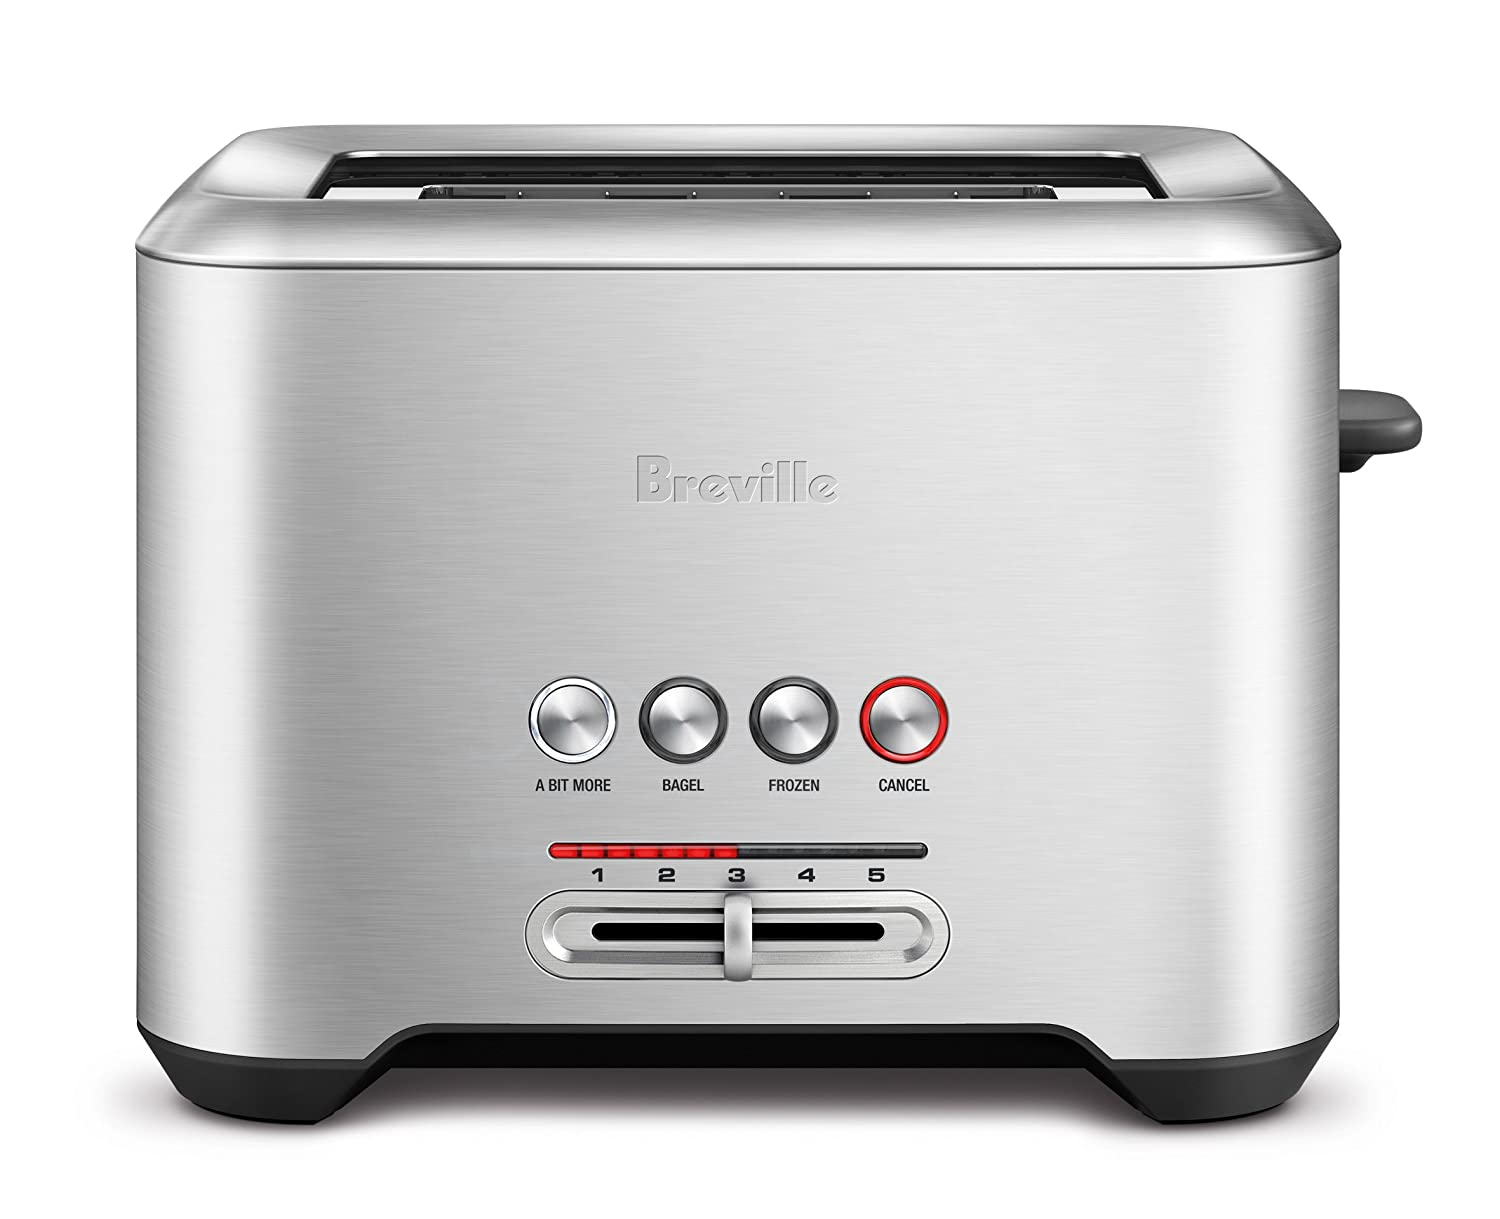 Breville A Bit More 4 Slice Toaster Amazon Home & Kitchen